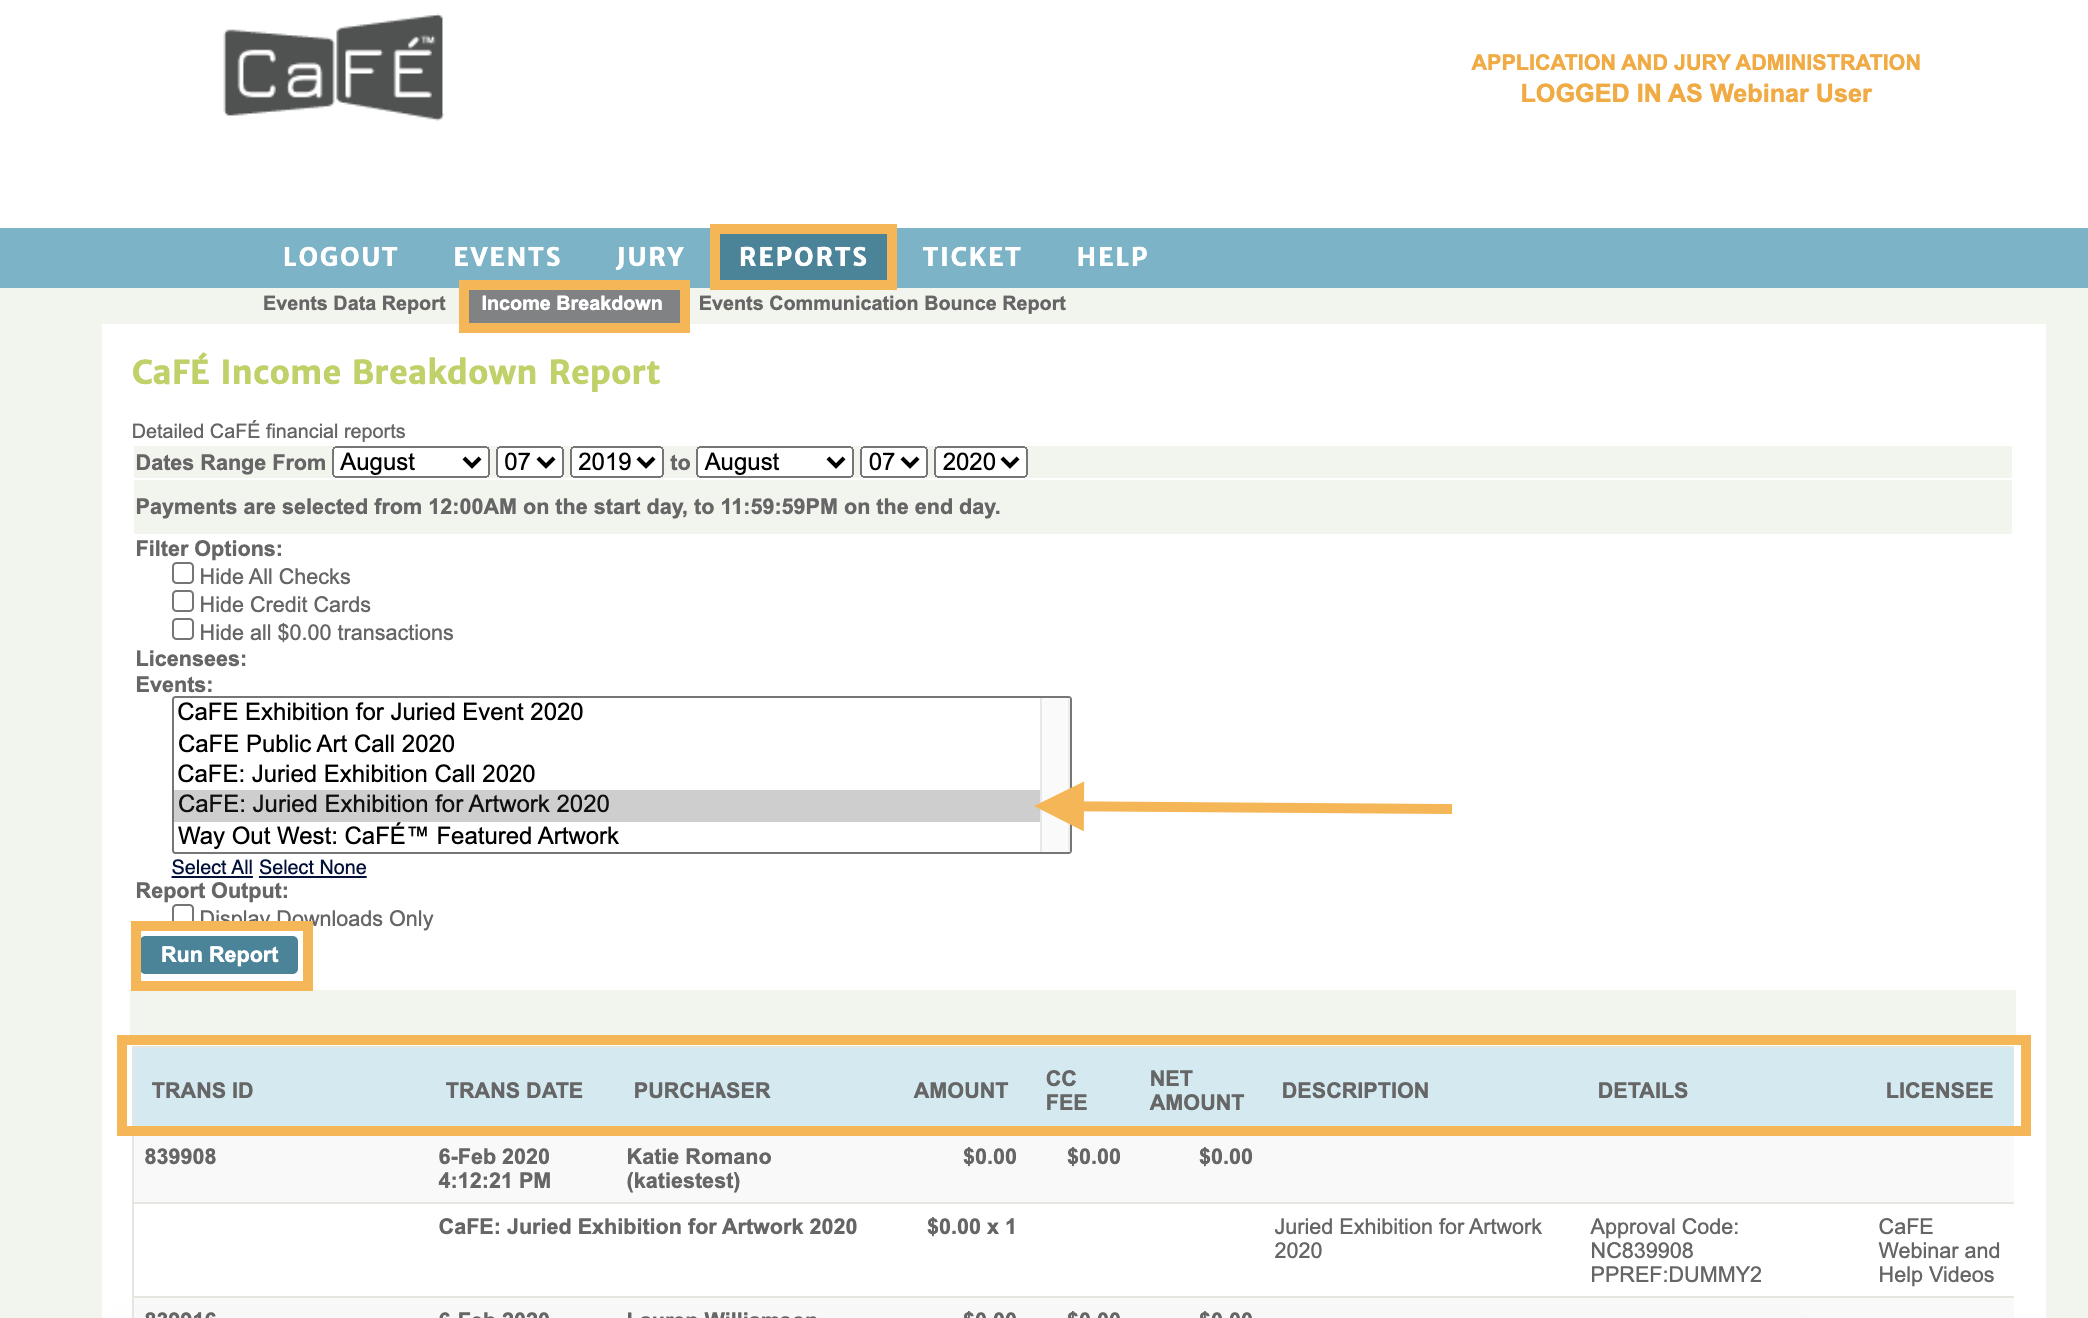 Screenshot of the Income Breakdown report highlighting the various payment details